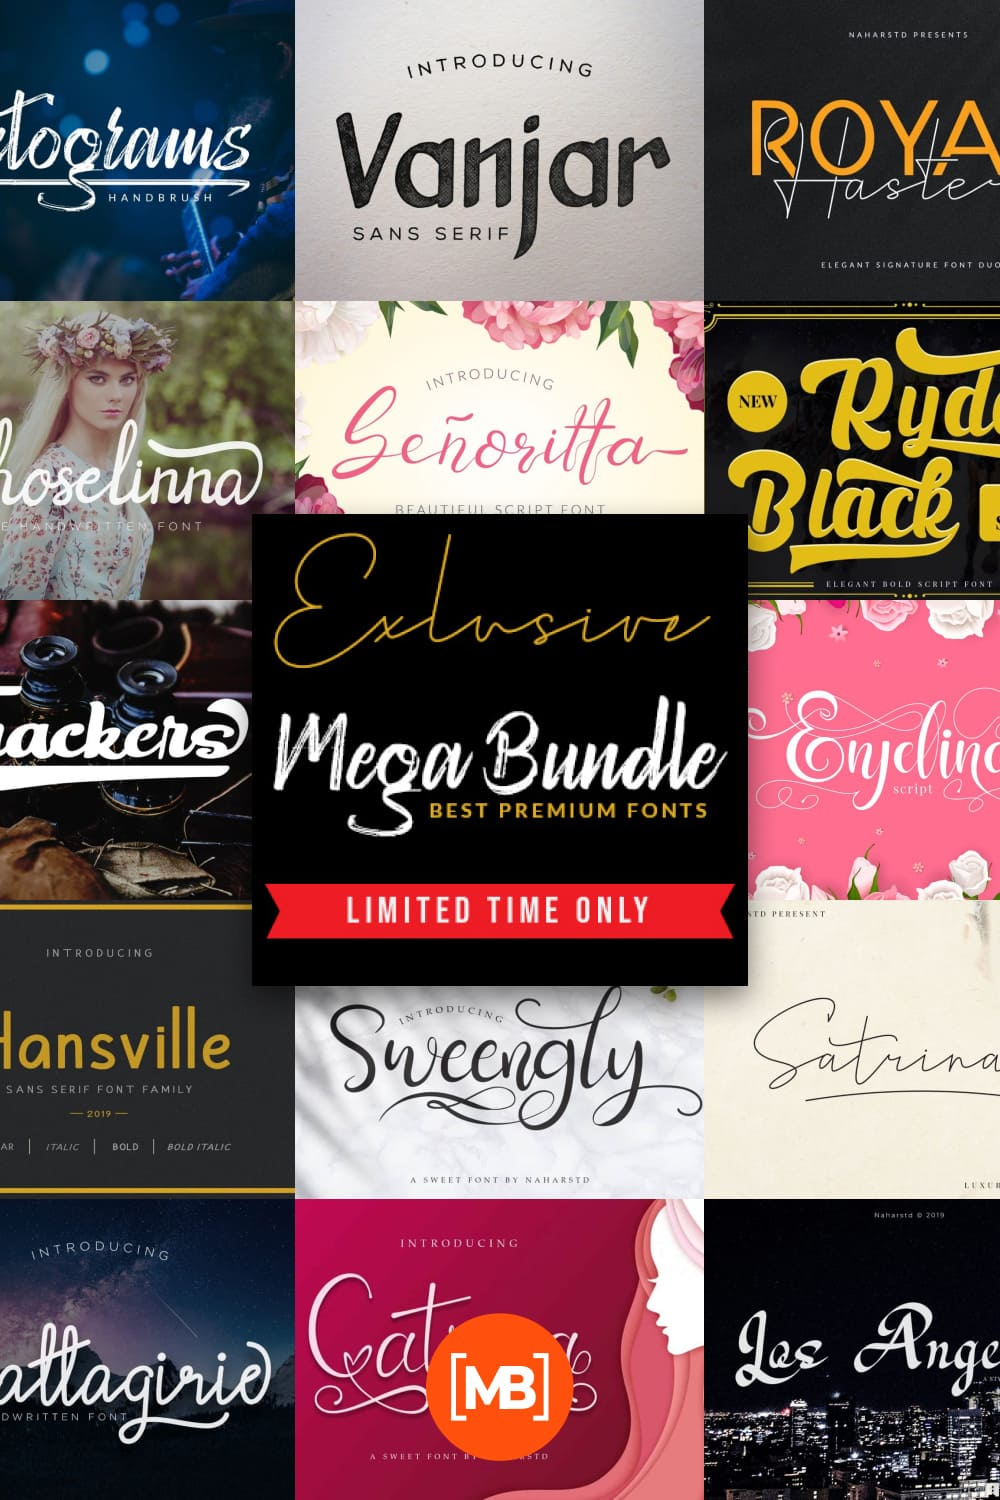 A large collection of fonts in which you can choose a font for any purpose.